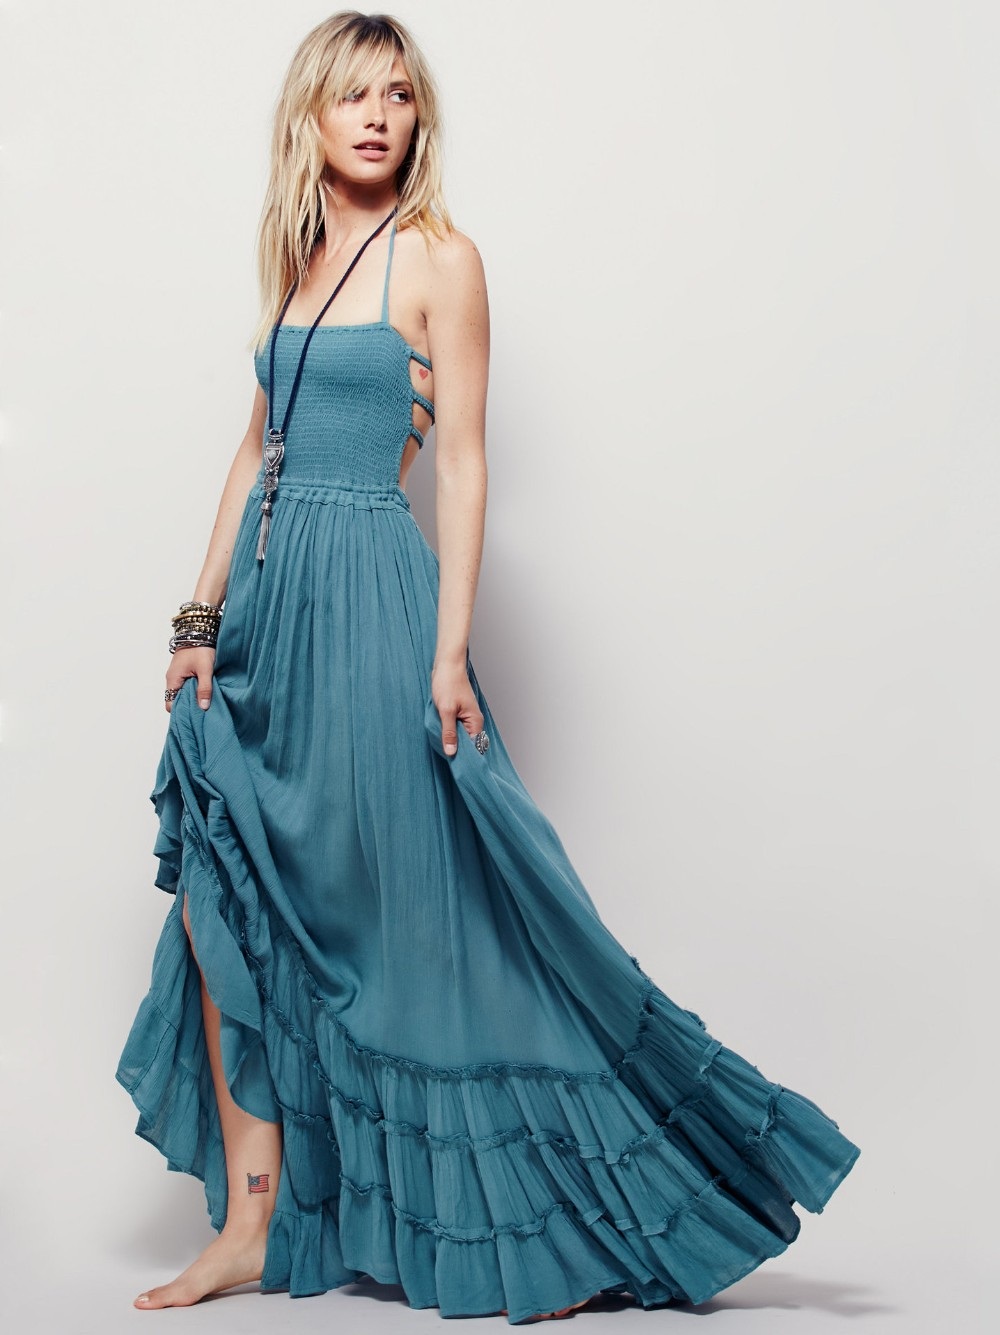 Beautiful long dresses for summer - Dress on sale